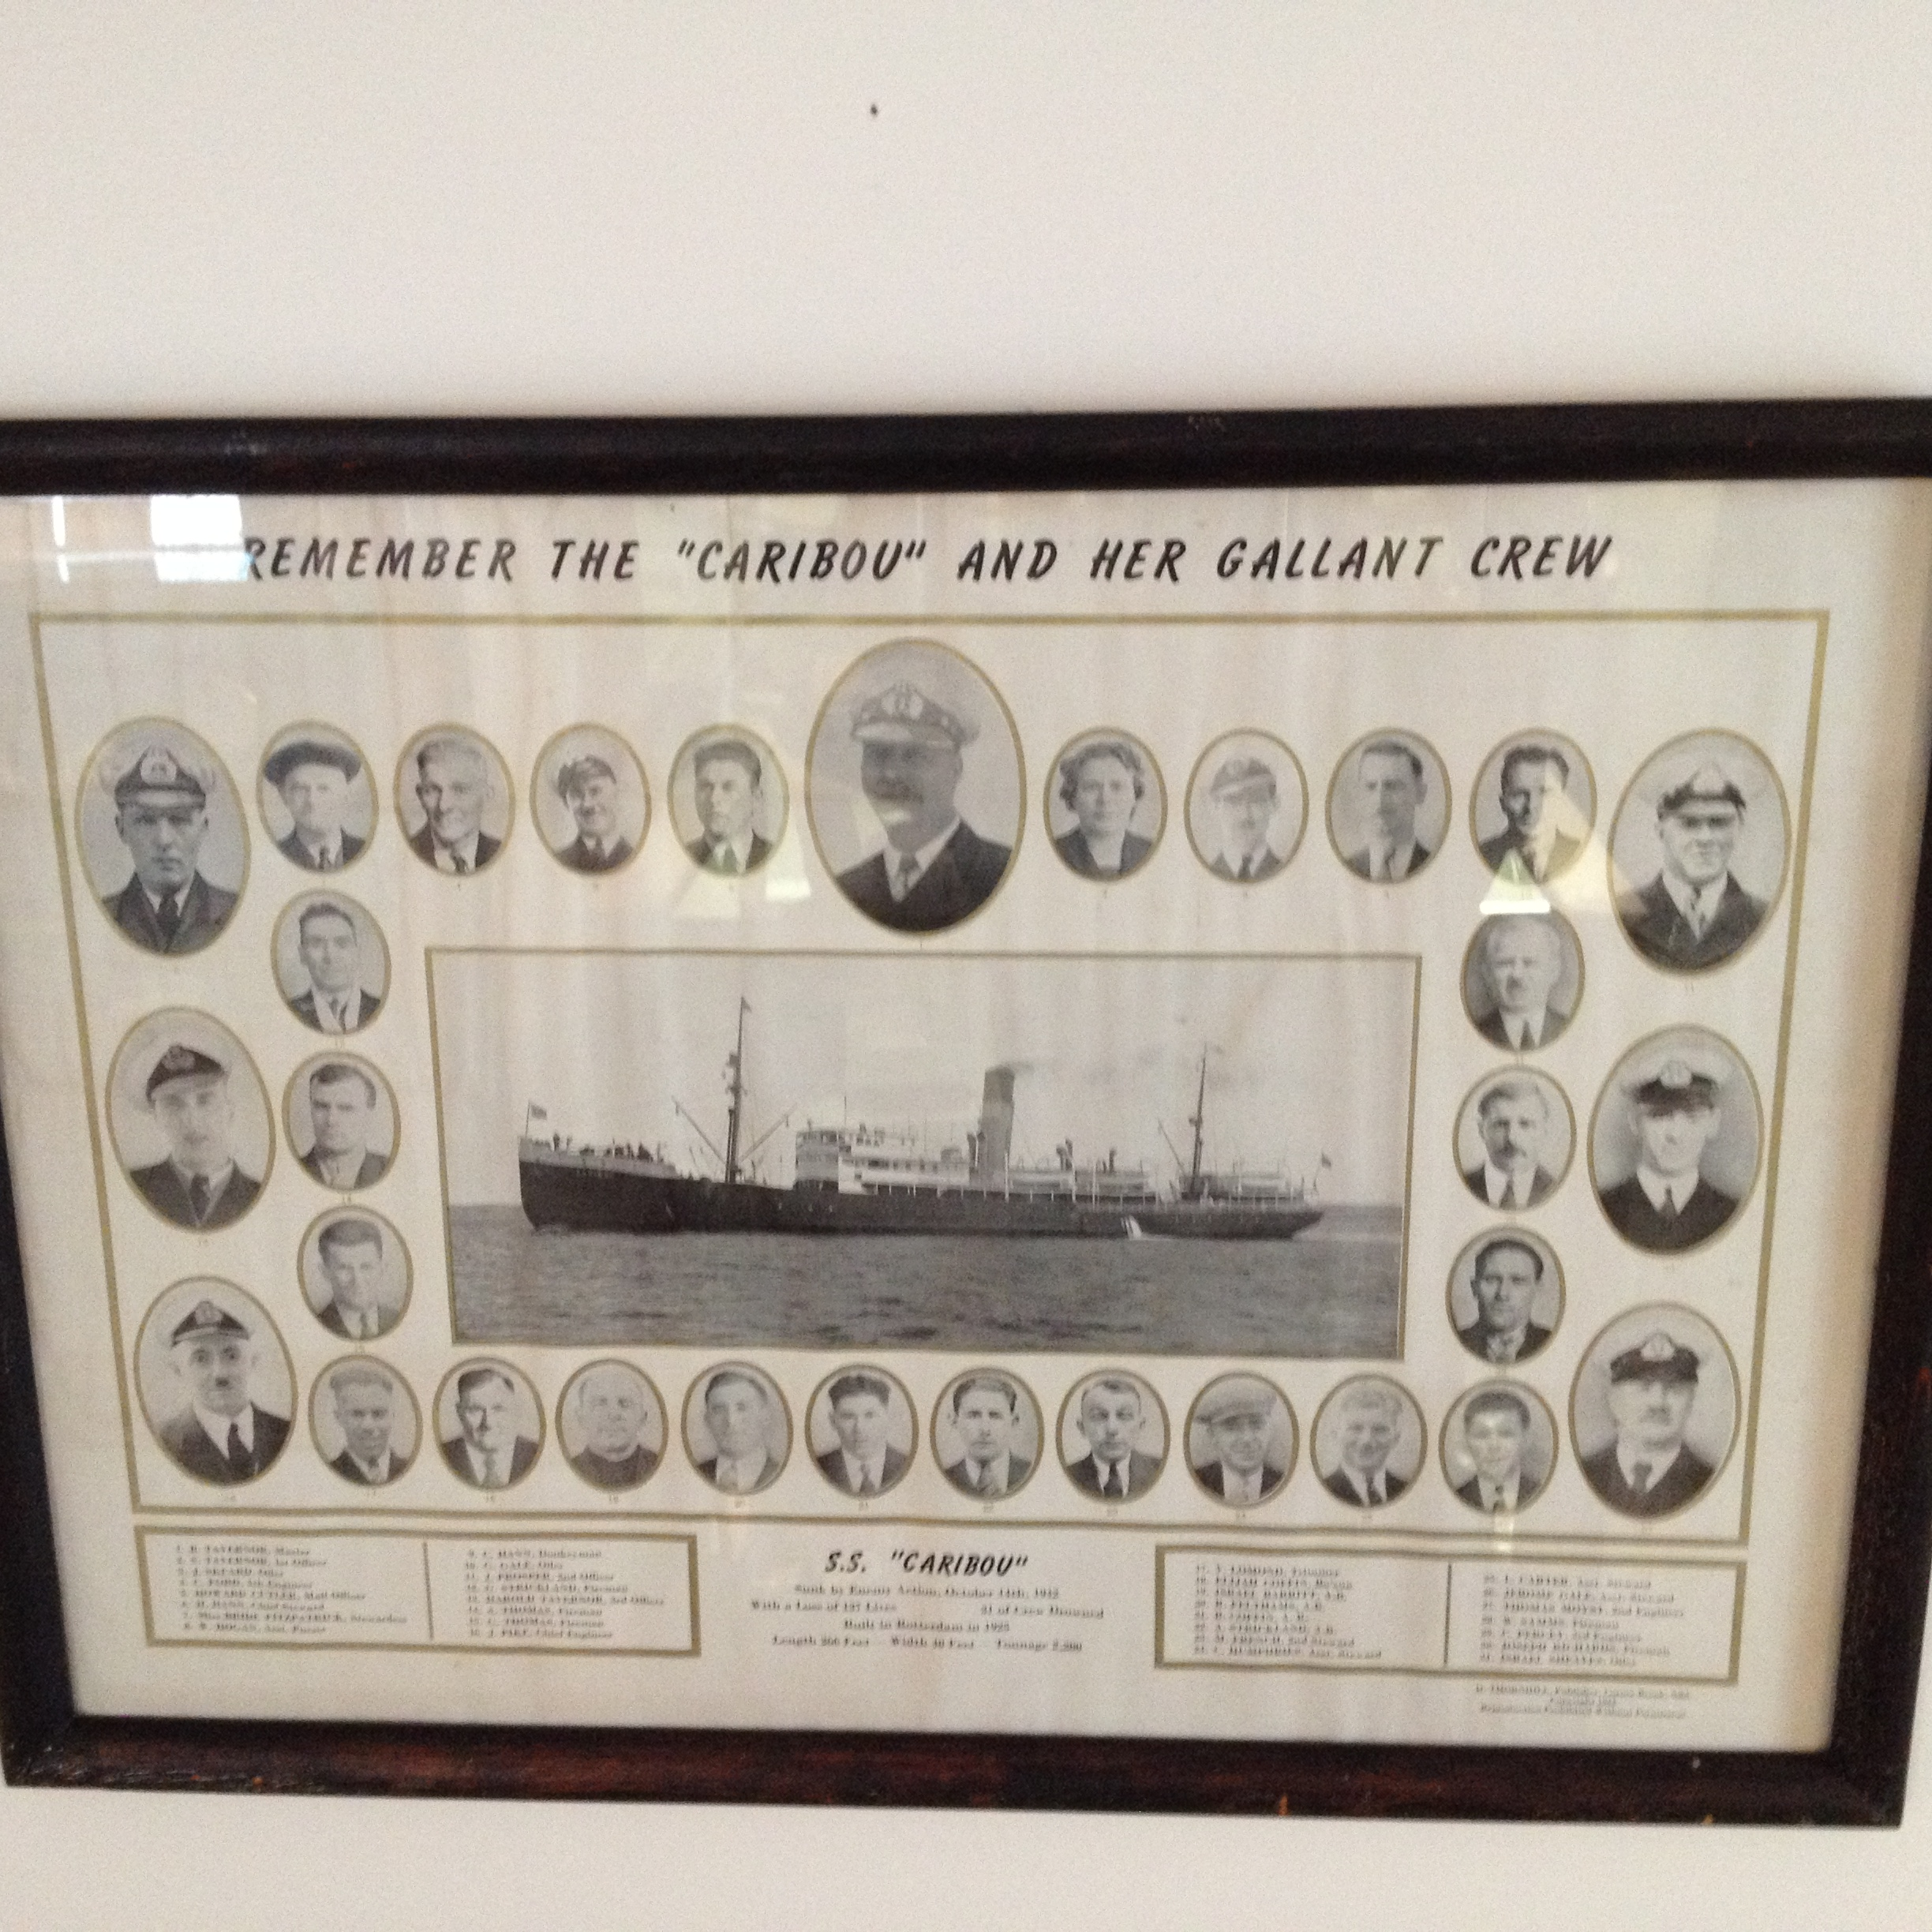 SS Caribou– In memory of the men and women who perished on the SS Caribou October 14th 1942. Submitted on behalf of the Twillingate (Newfoundland) Museum for the project, Operation Picture Me